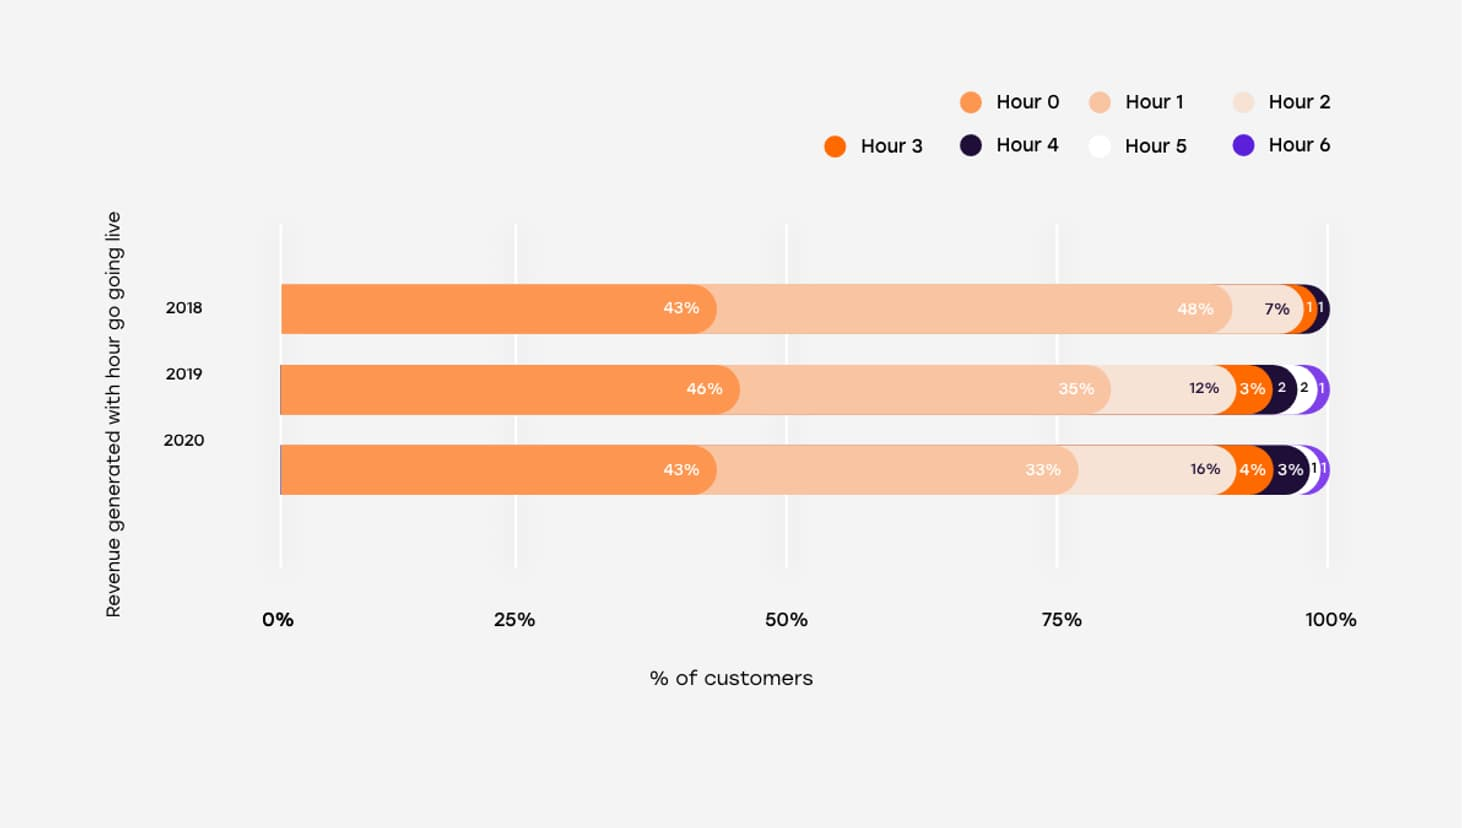 Customers live on day 1 vs hour of revenue generated 2x